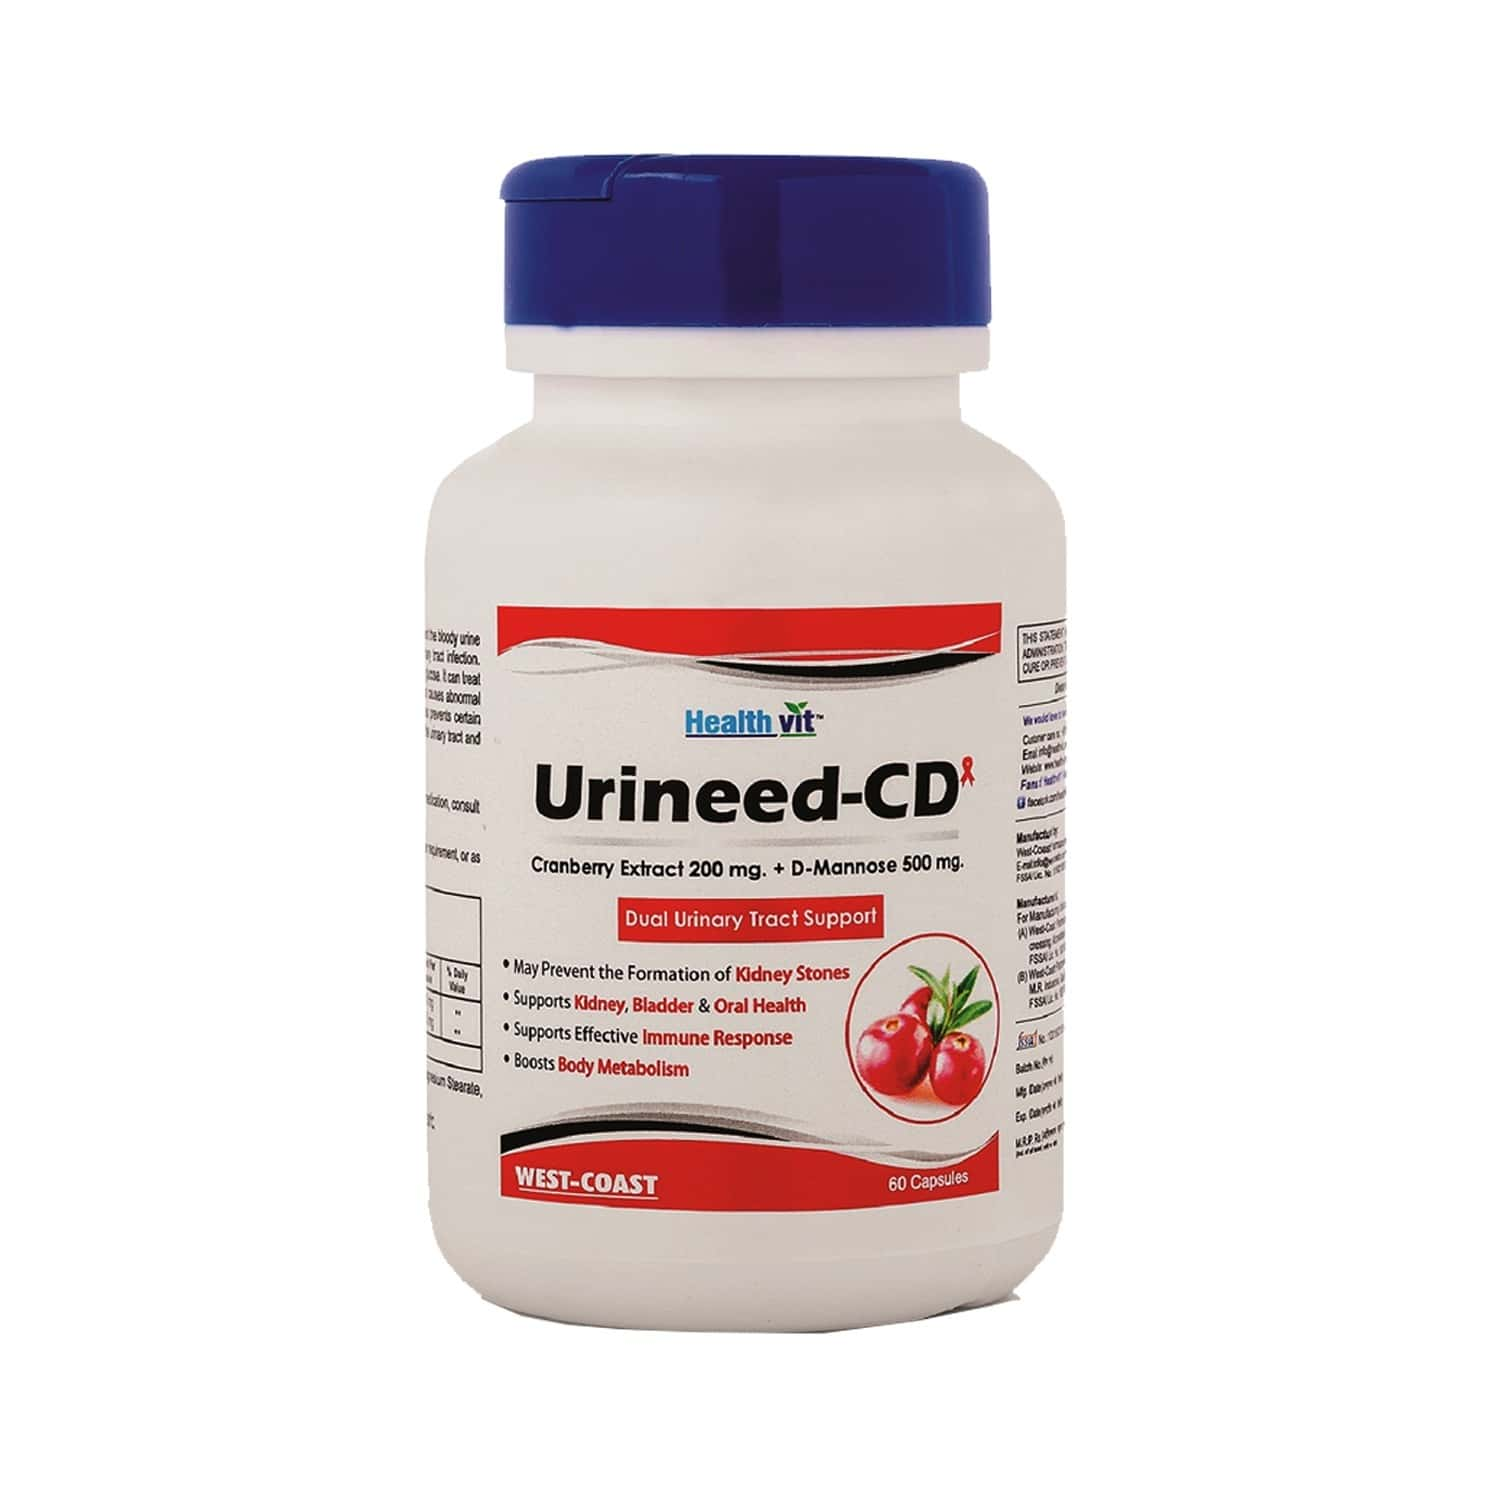 Healthvit Urineed-cd ( 4cranberry Extract 200 Mg. D-mannose 500 Mg ) - 60 Capsules